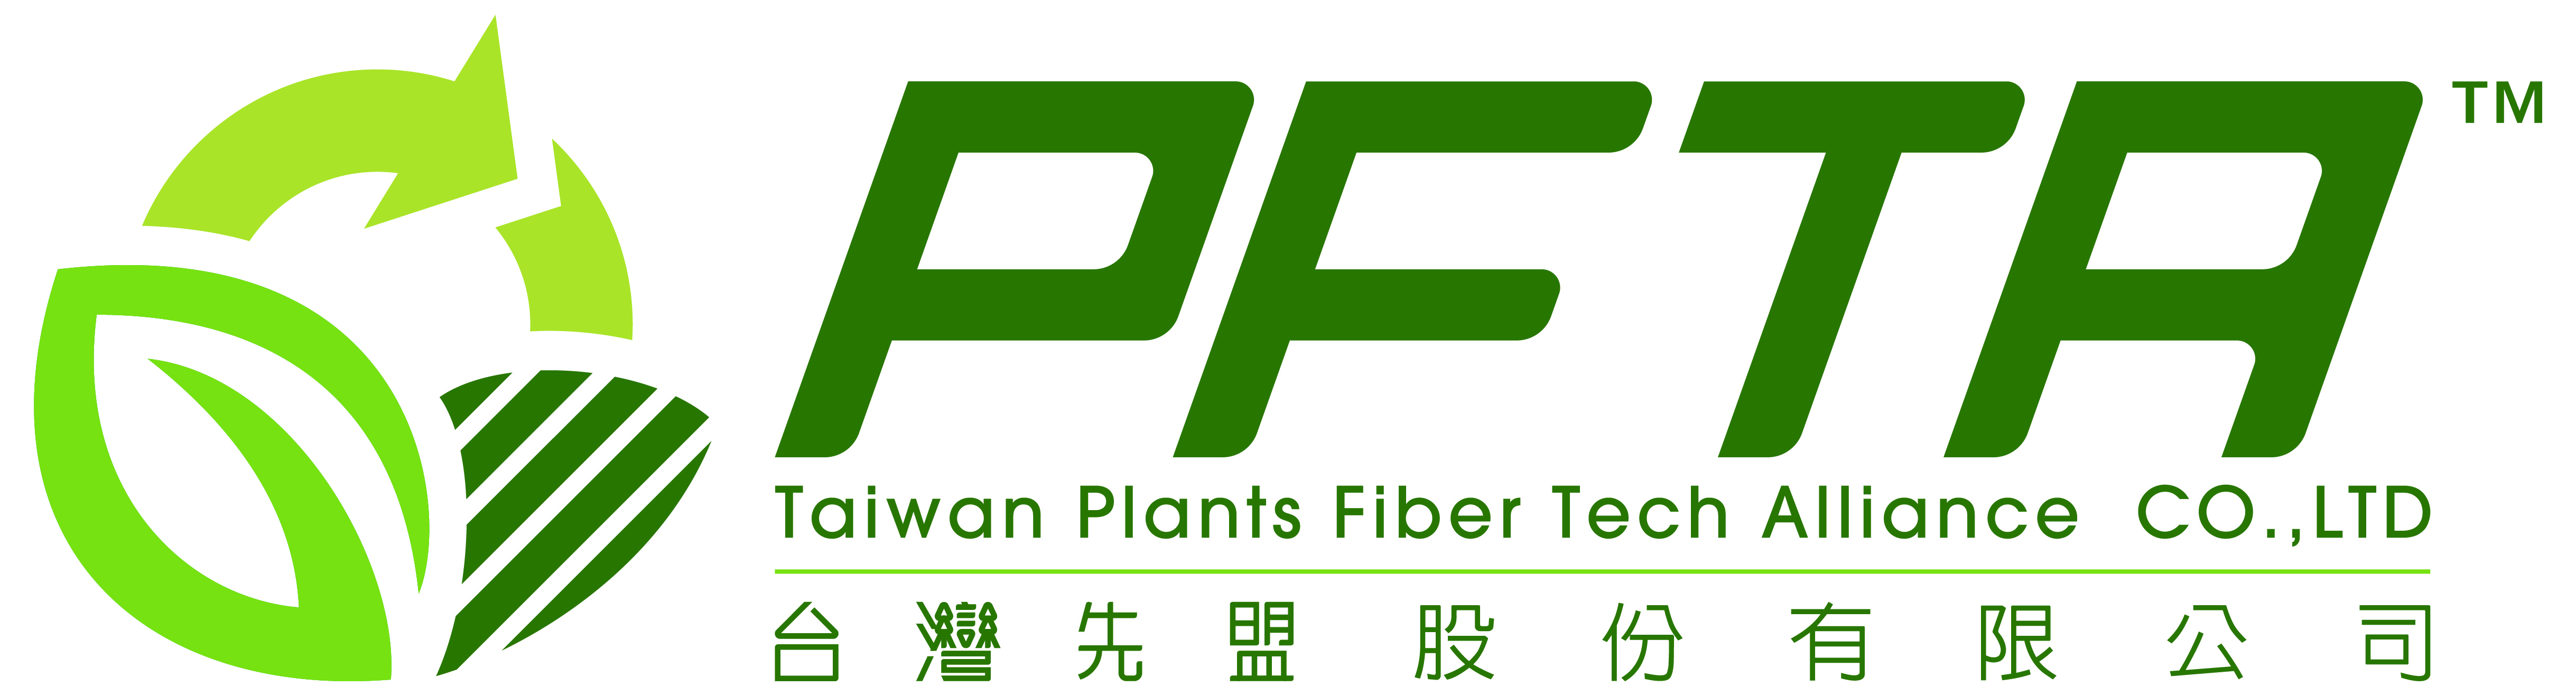 Taiwan Plants Fiber Tech Alliance